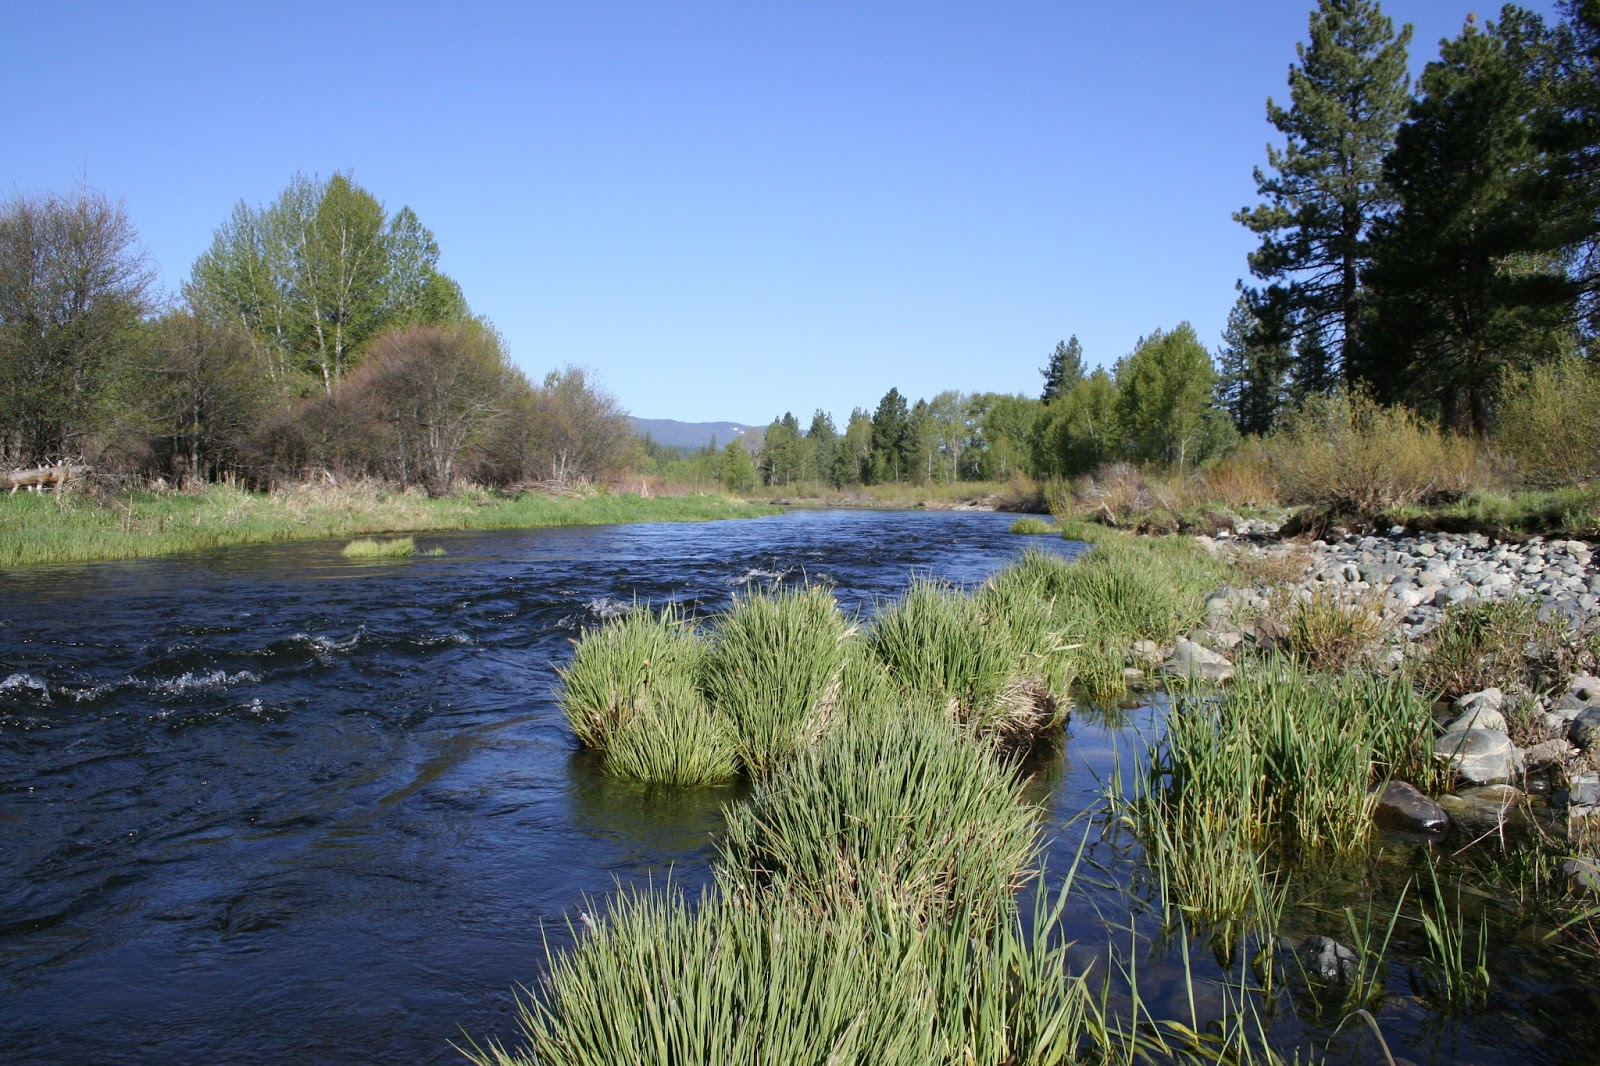 Jon Baiocchi Fly Fishing News Upcoming Middle Fork